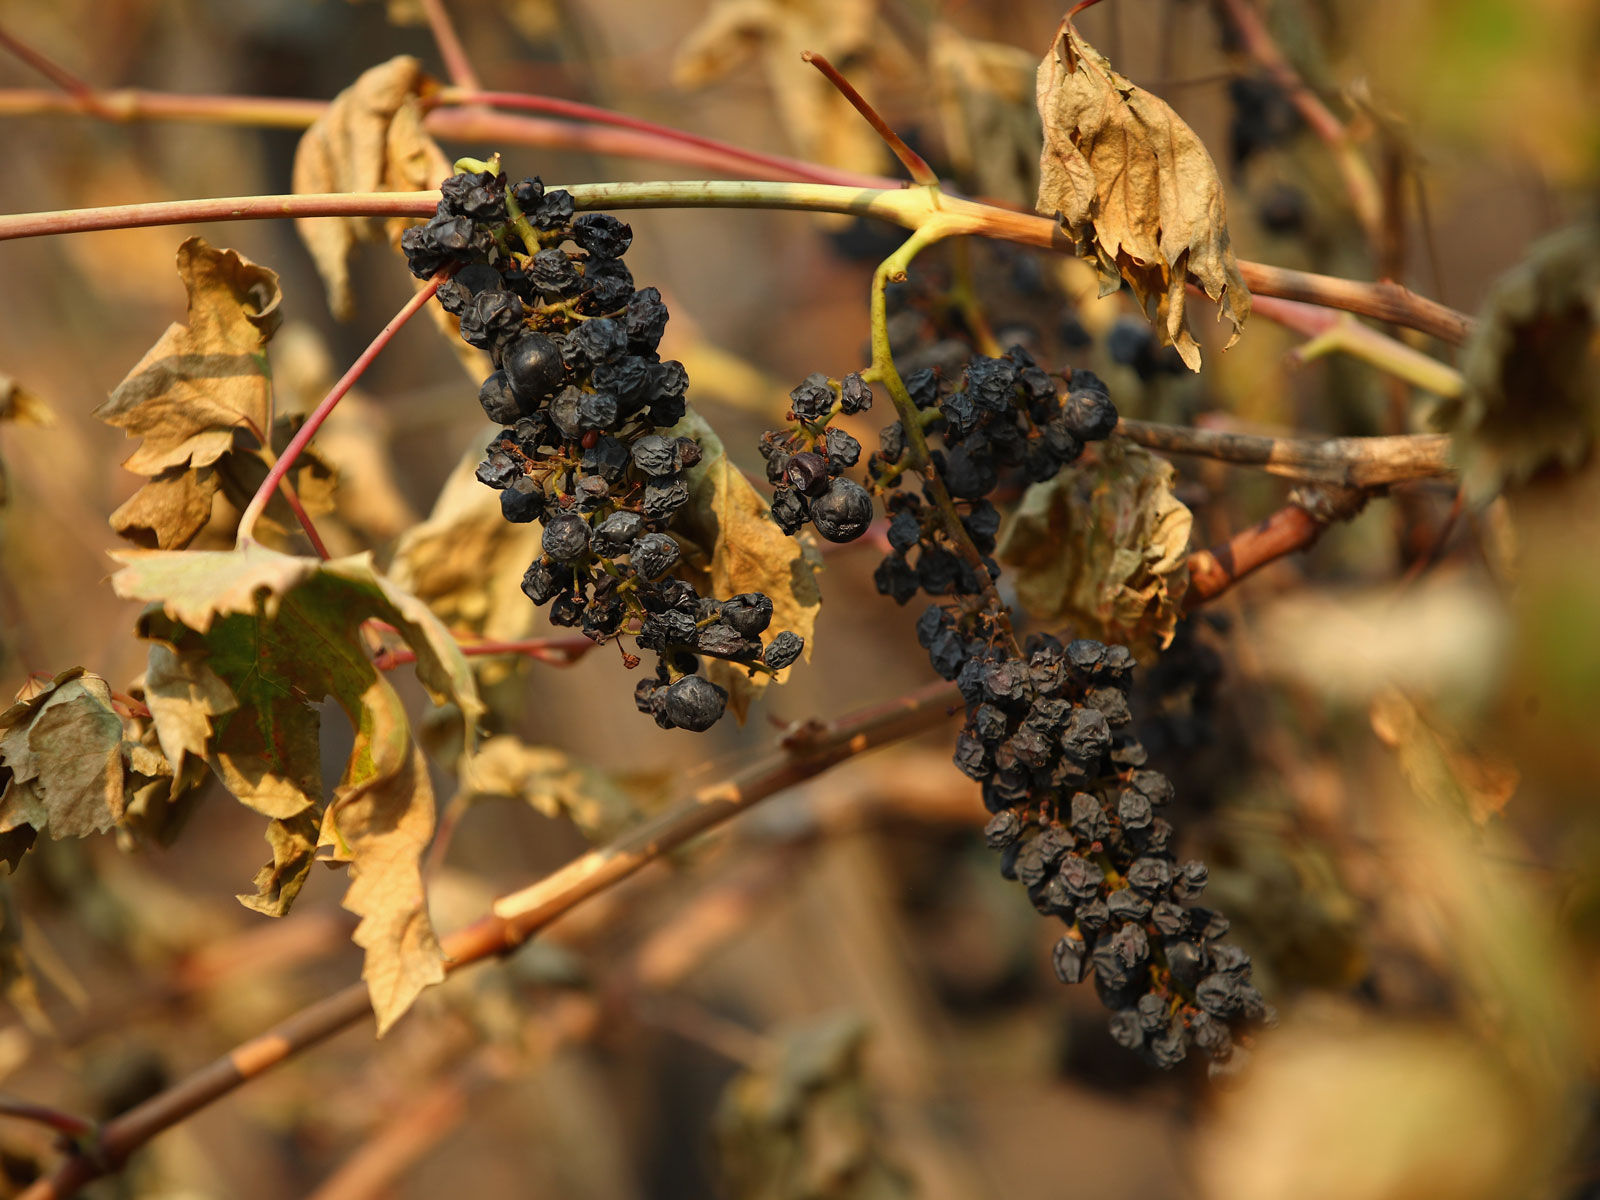 Wine Study to Focus on 'Smoke Taint' Caused by Wildfires